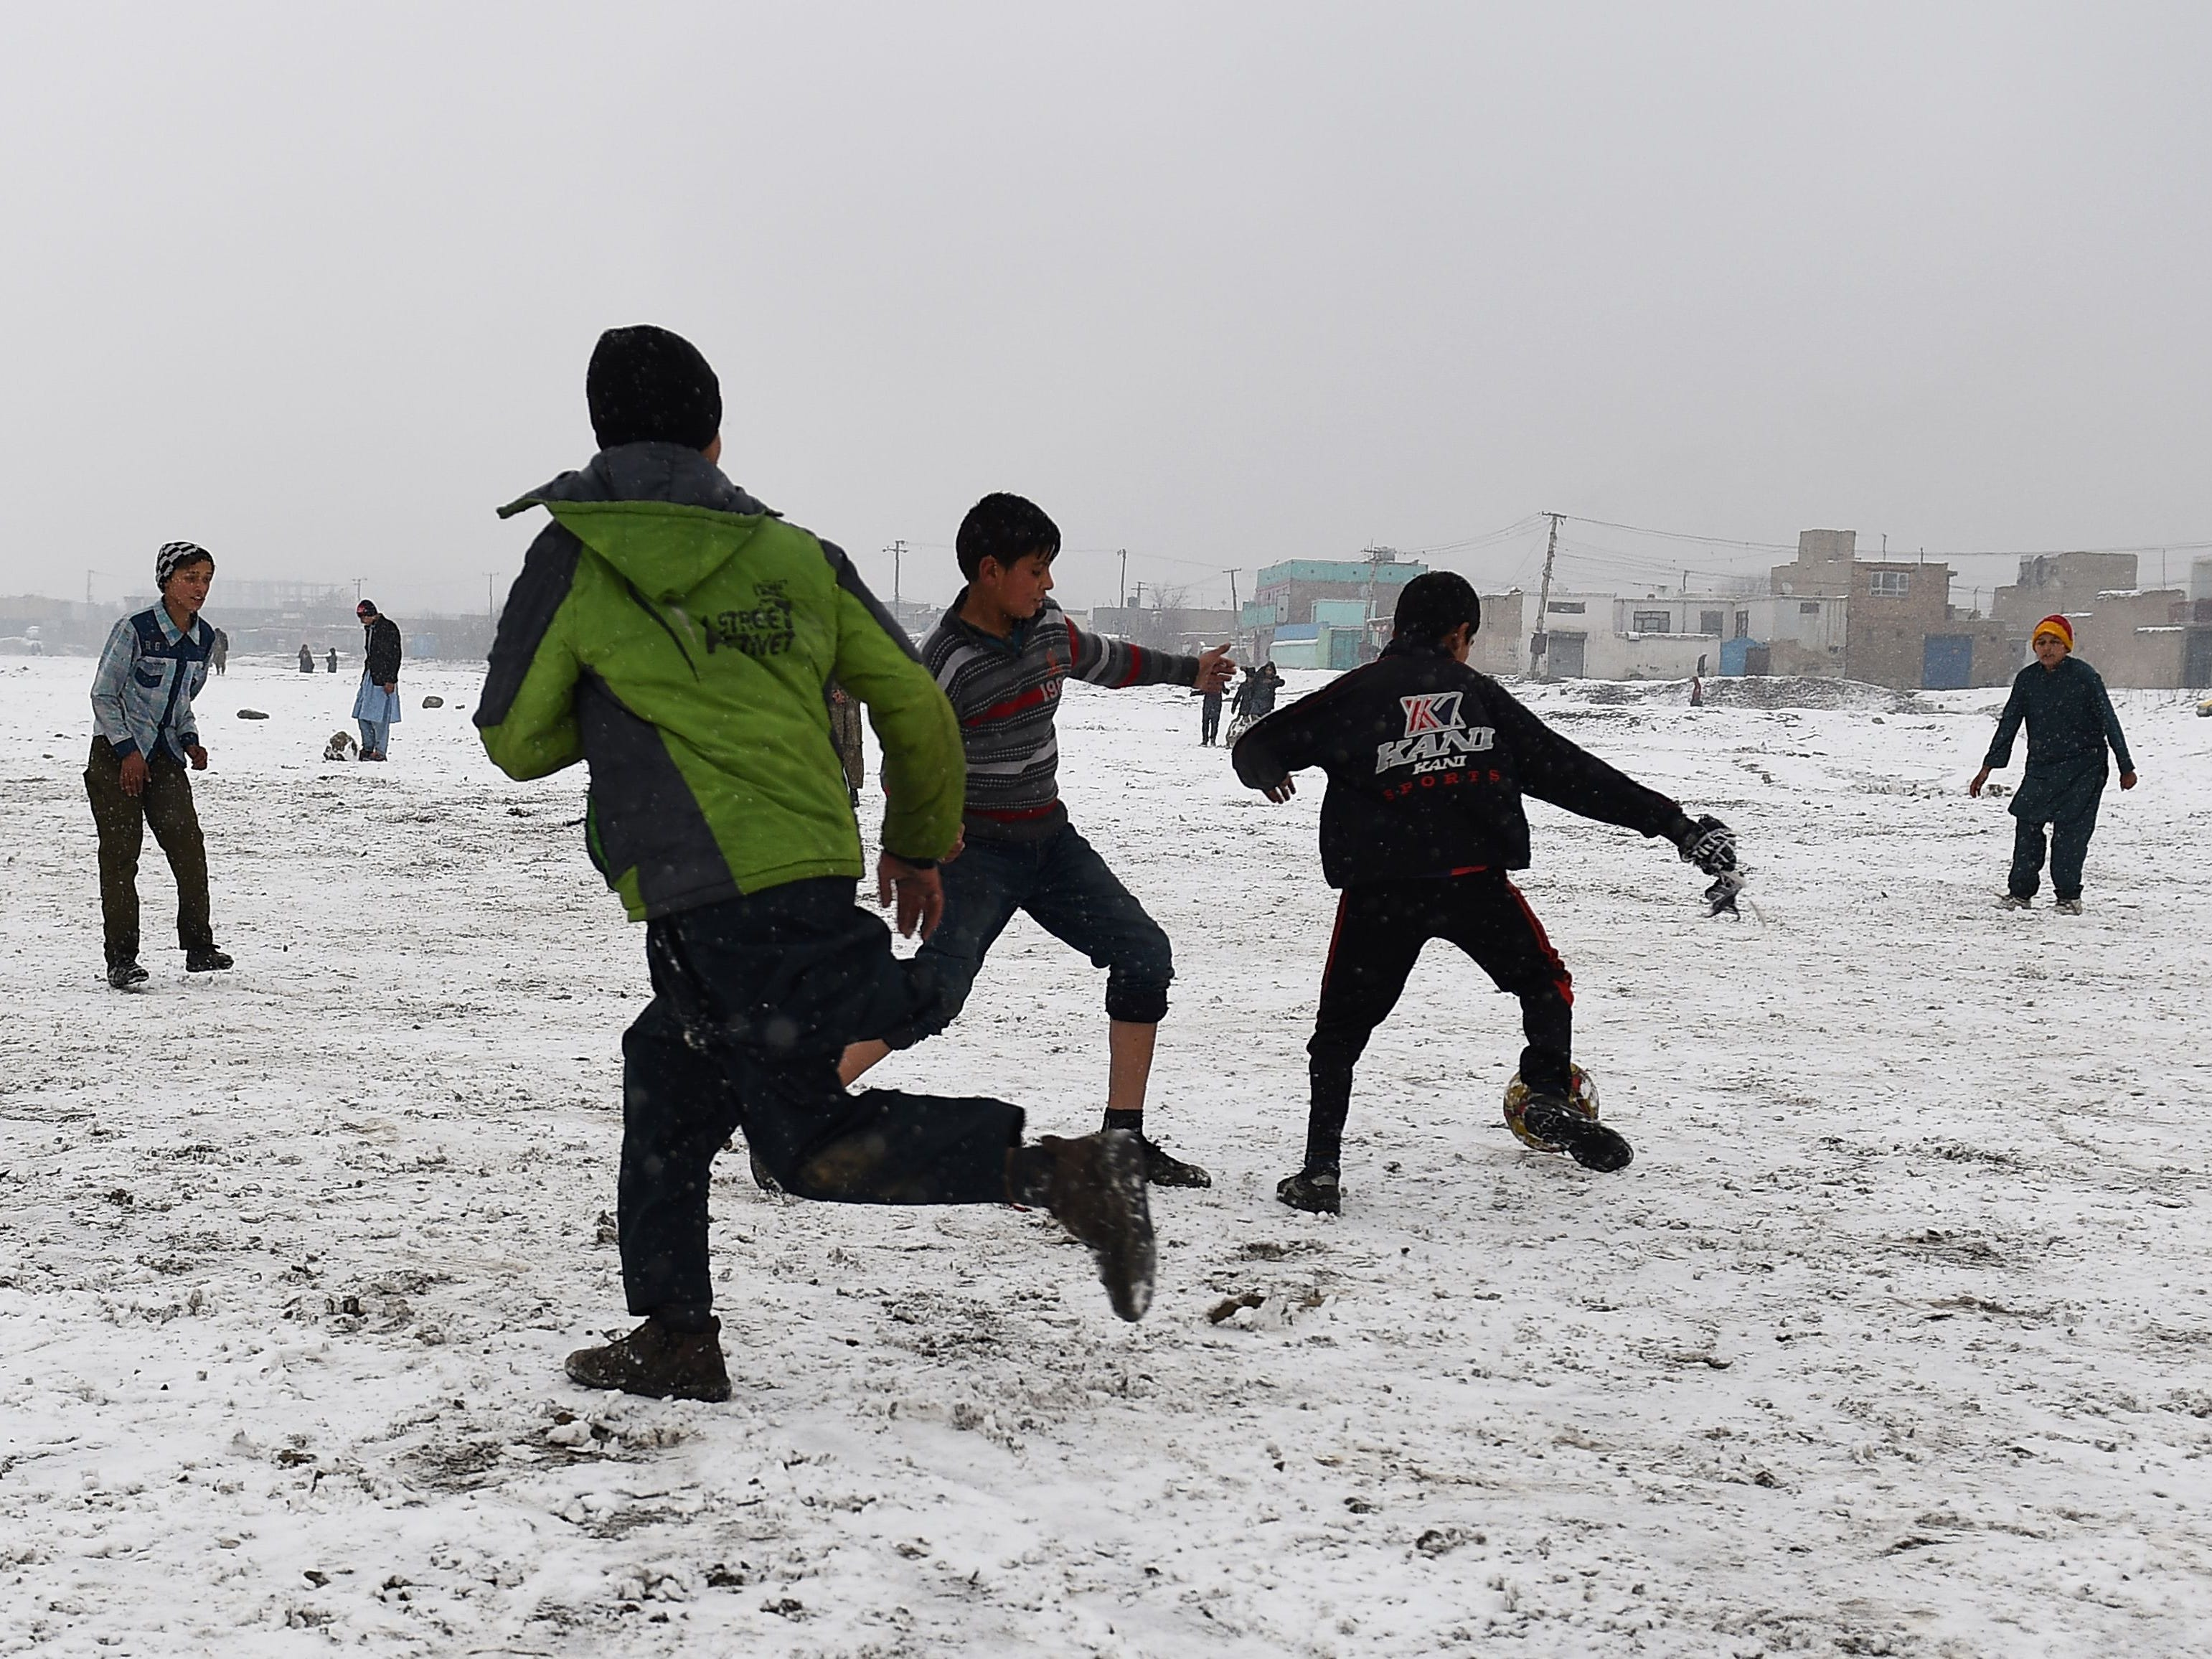 Afghan youths play football in the snow at Shuhada Lake in Kabul Jan. 4, 2019.